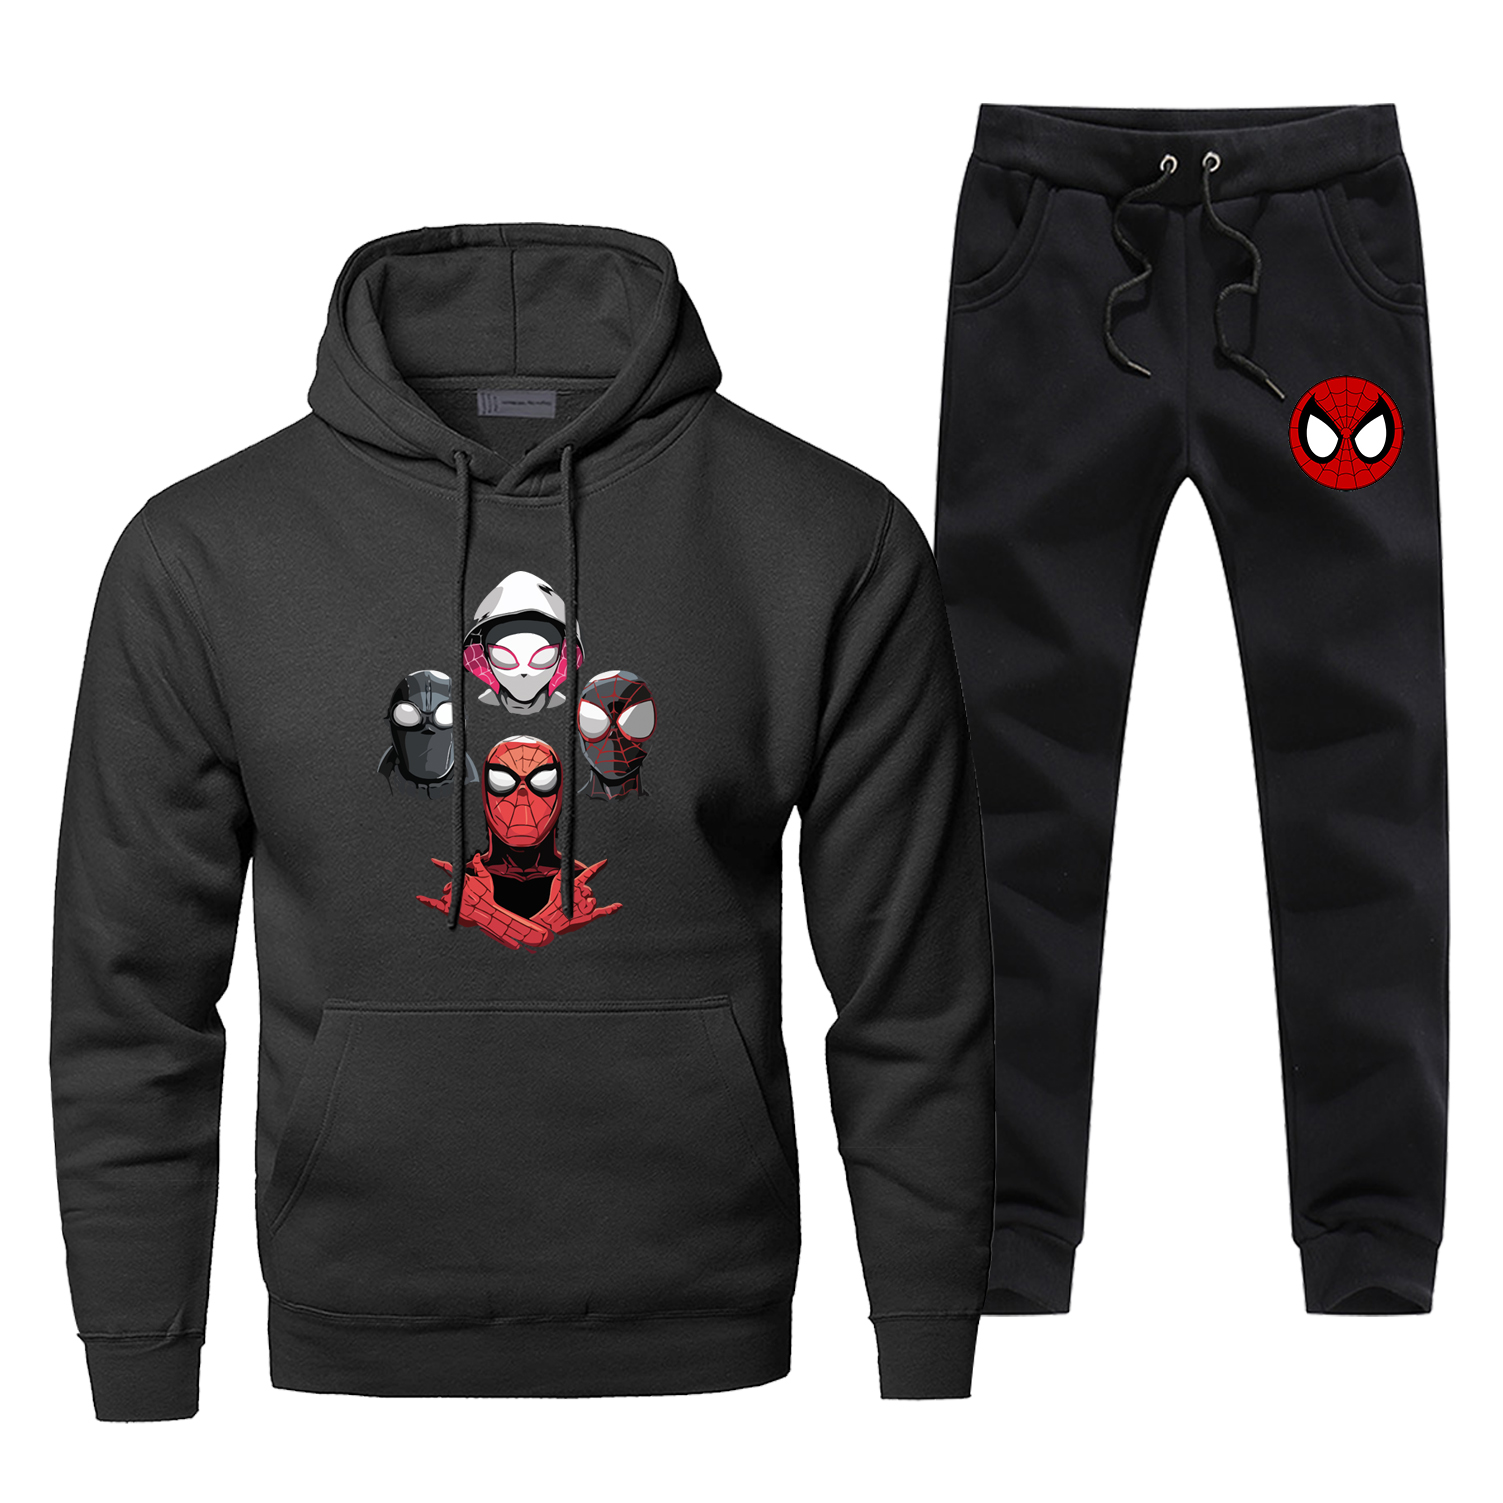 Spider Man: Into The Spider Verse Print Men's Sets Casual Warm Fleece Sweatsuit Fashion Spider-Man Men's Full Suit Tracksuit